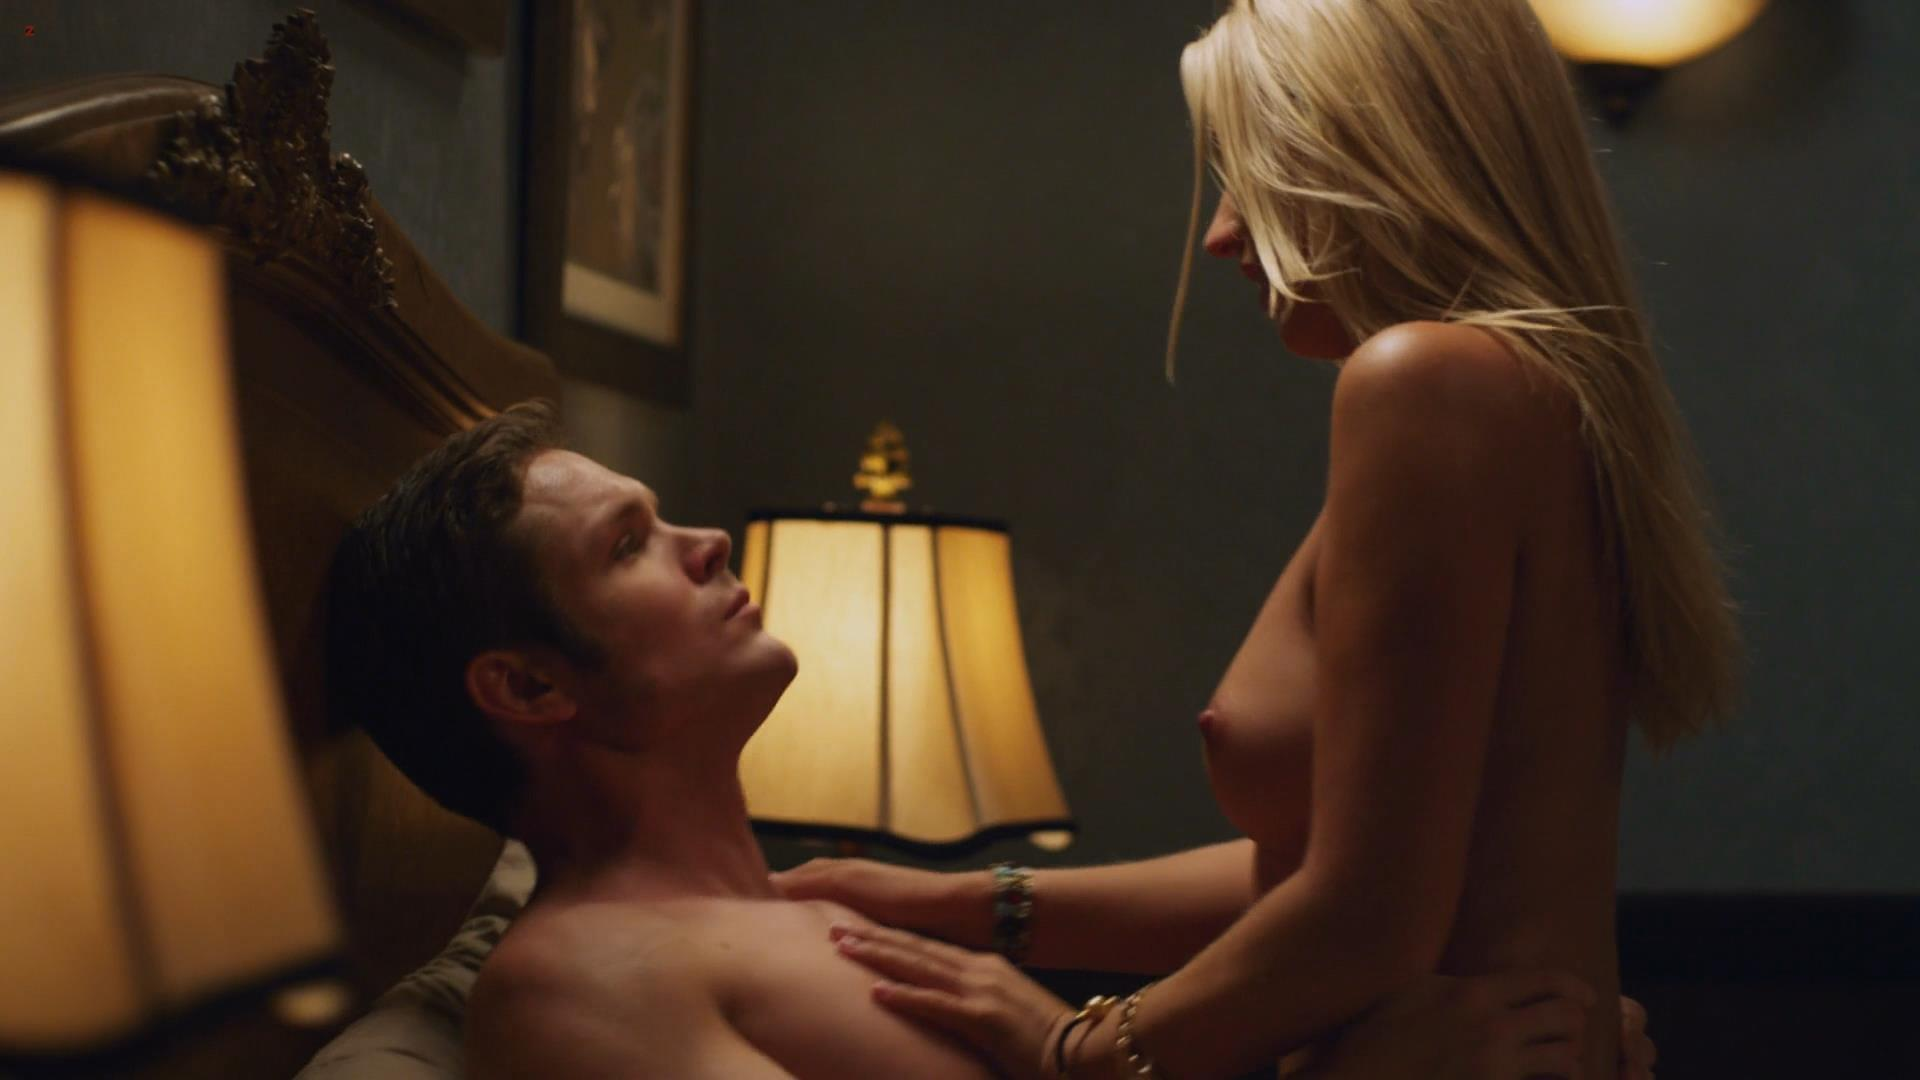 Hannah Britland Naked in malcolm naked nude huge boobs in - hijacked (2012) hd1080p